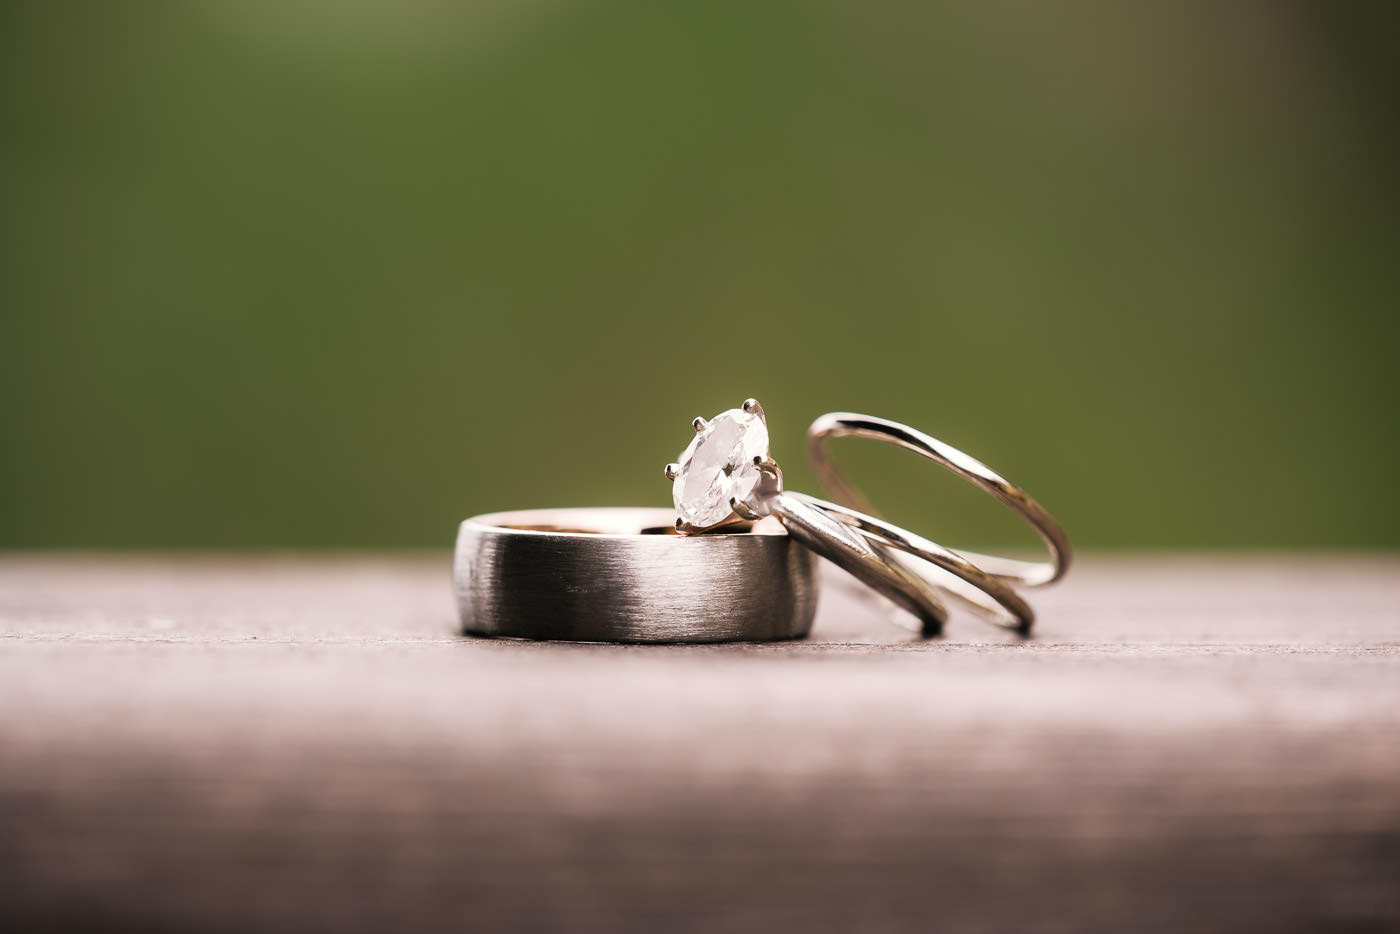 Macro photo of bride and groom's wedding rings.